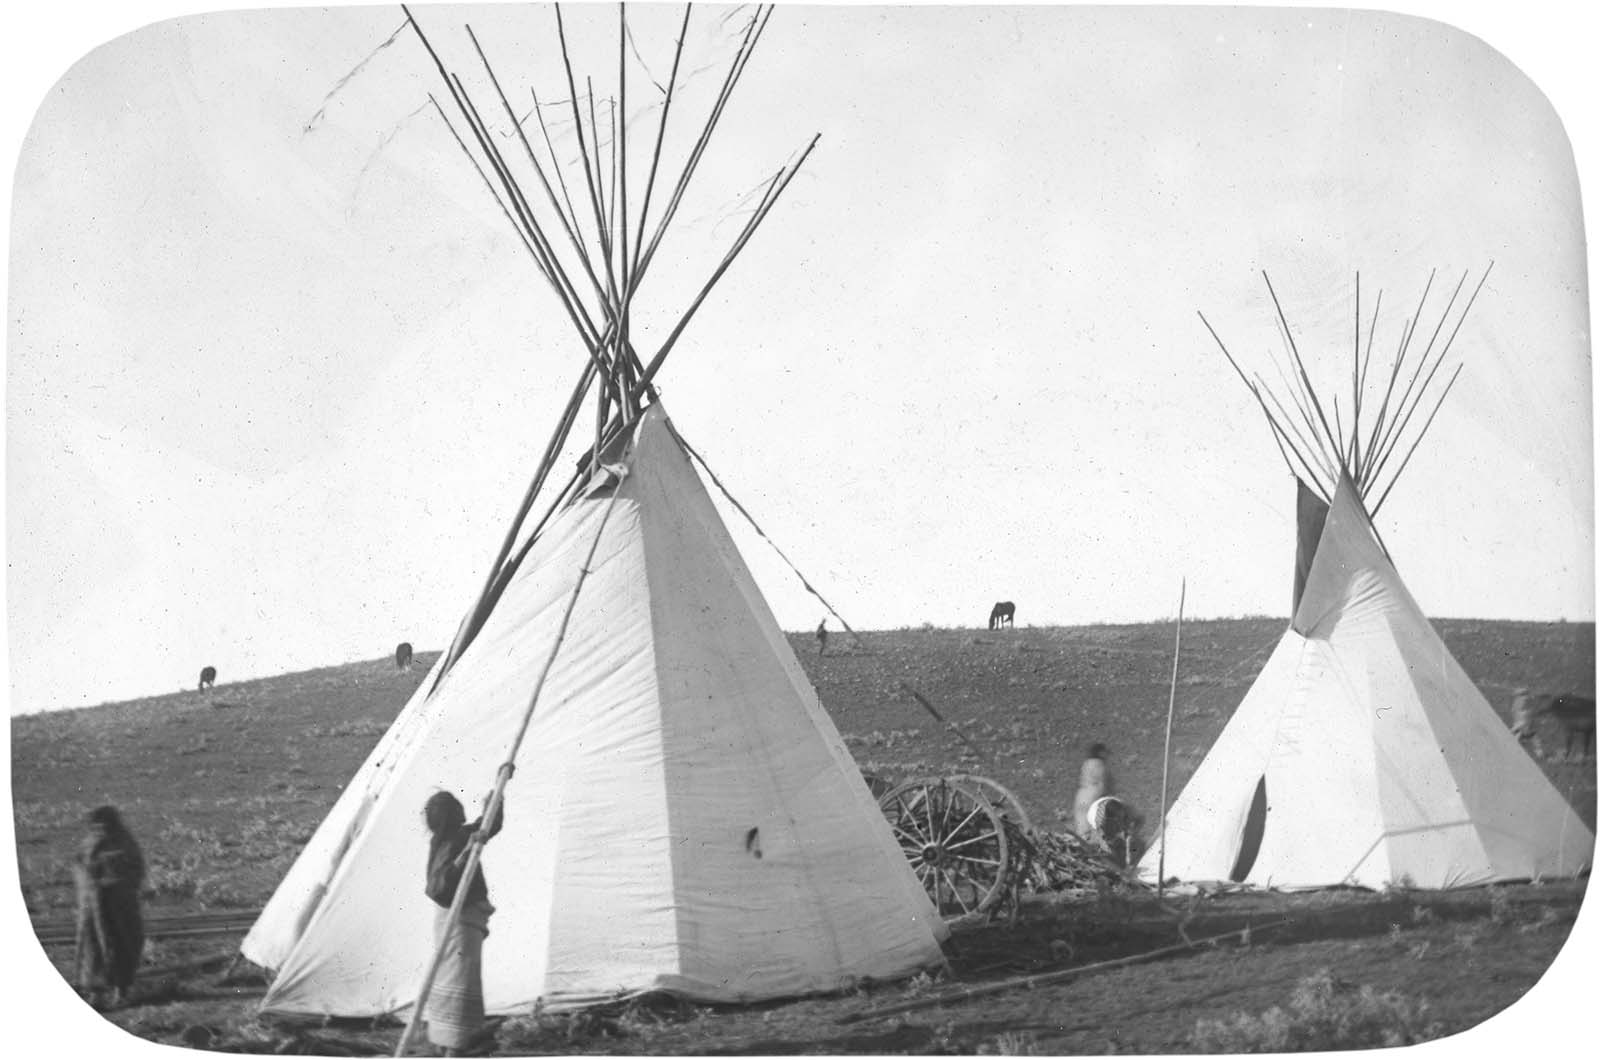 Crow women moving tipi flaps for ventilation, early 1900s. MS095 Petzoldt Collection, McCracken Research Library. LS.95.22